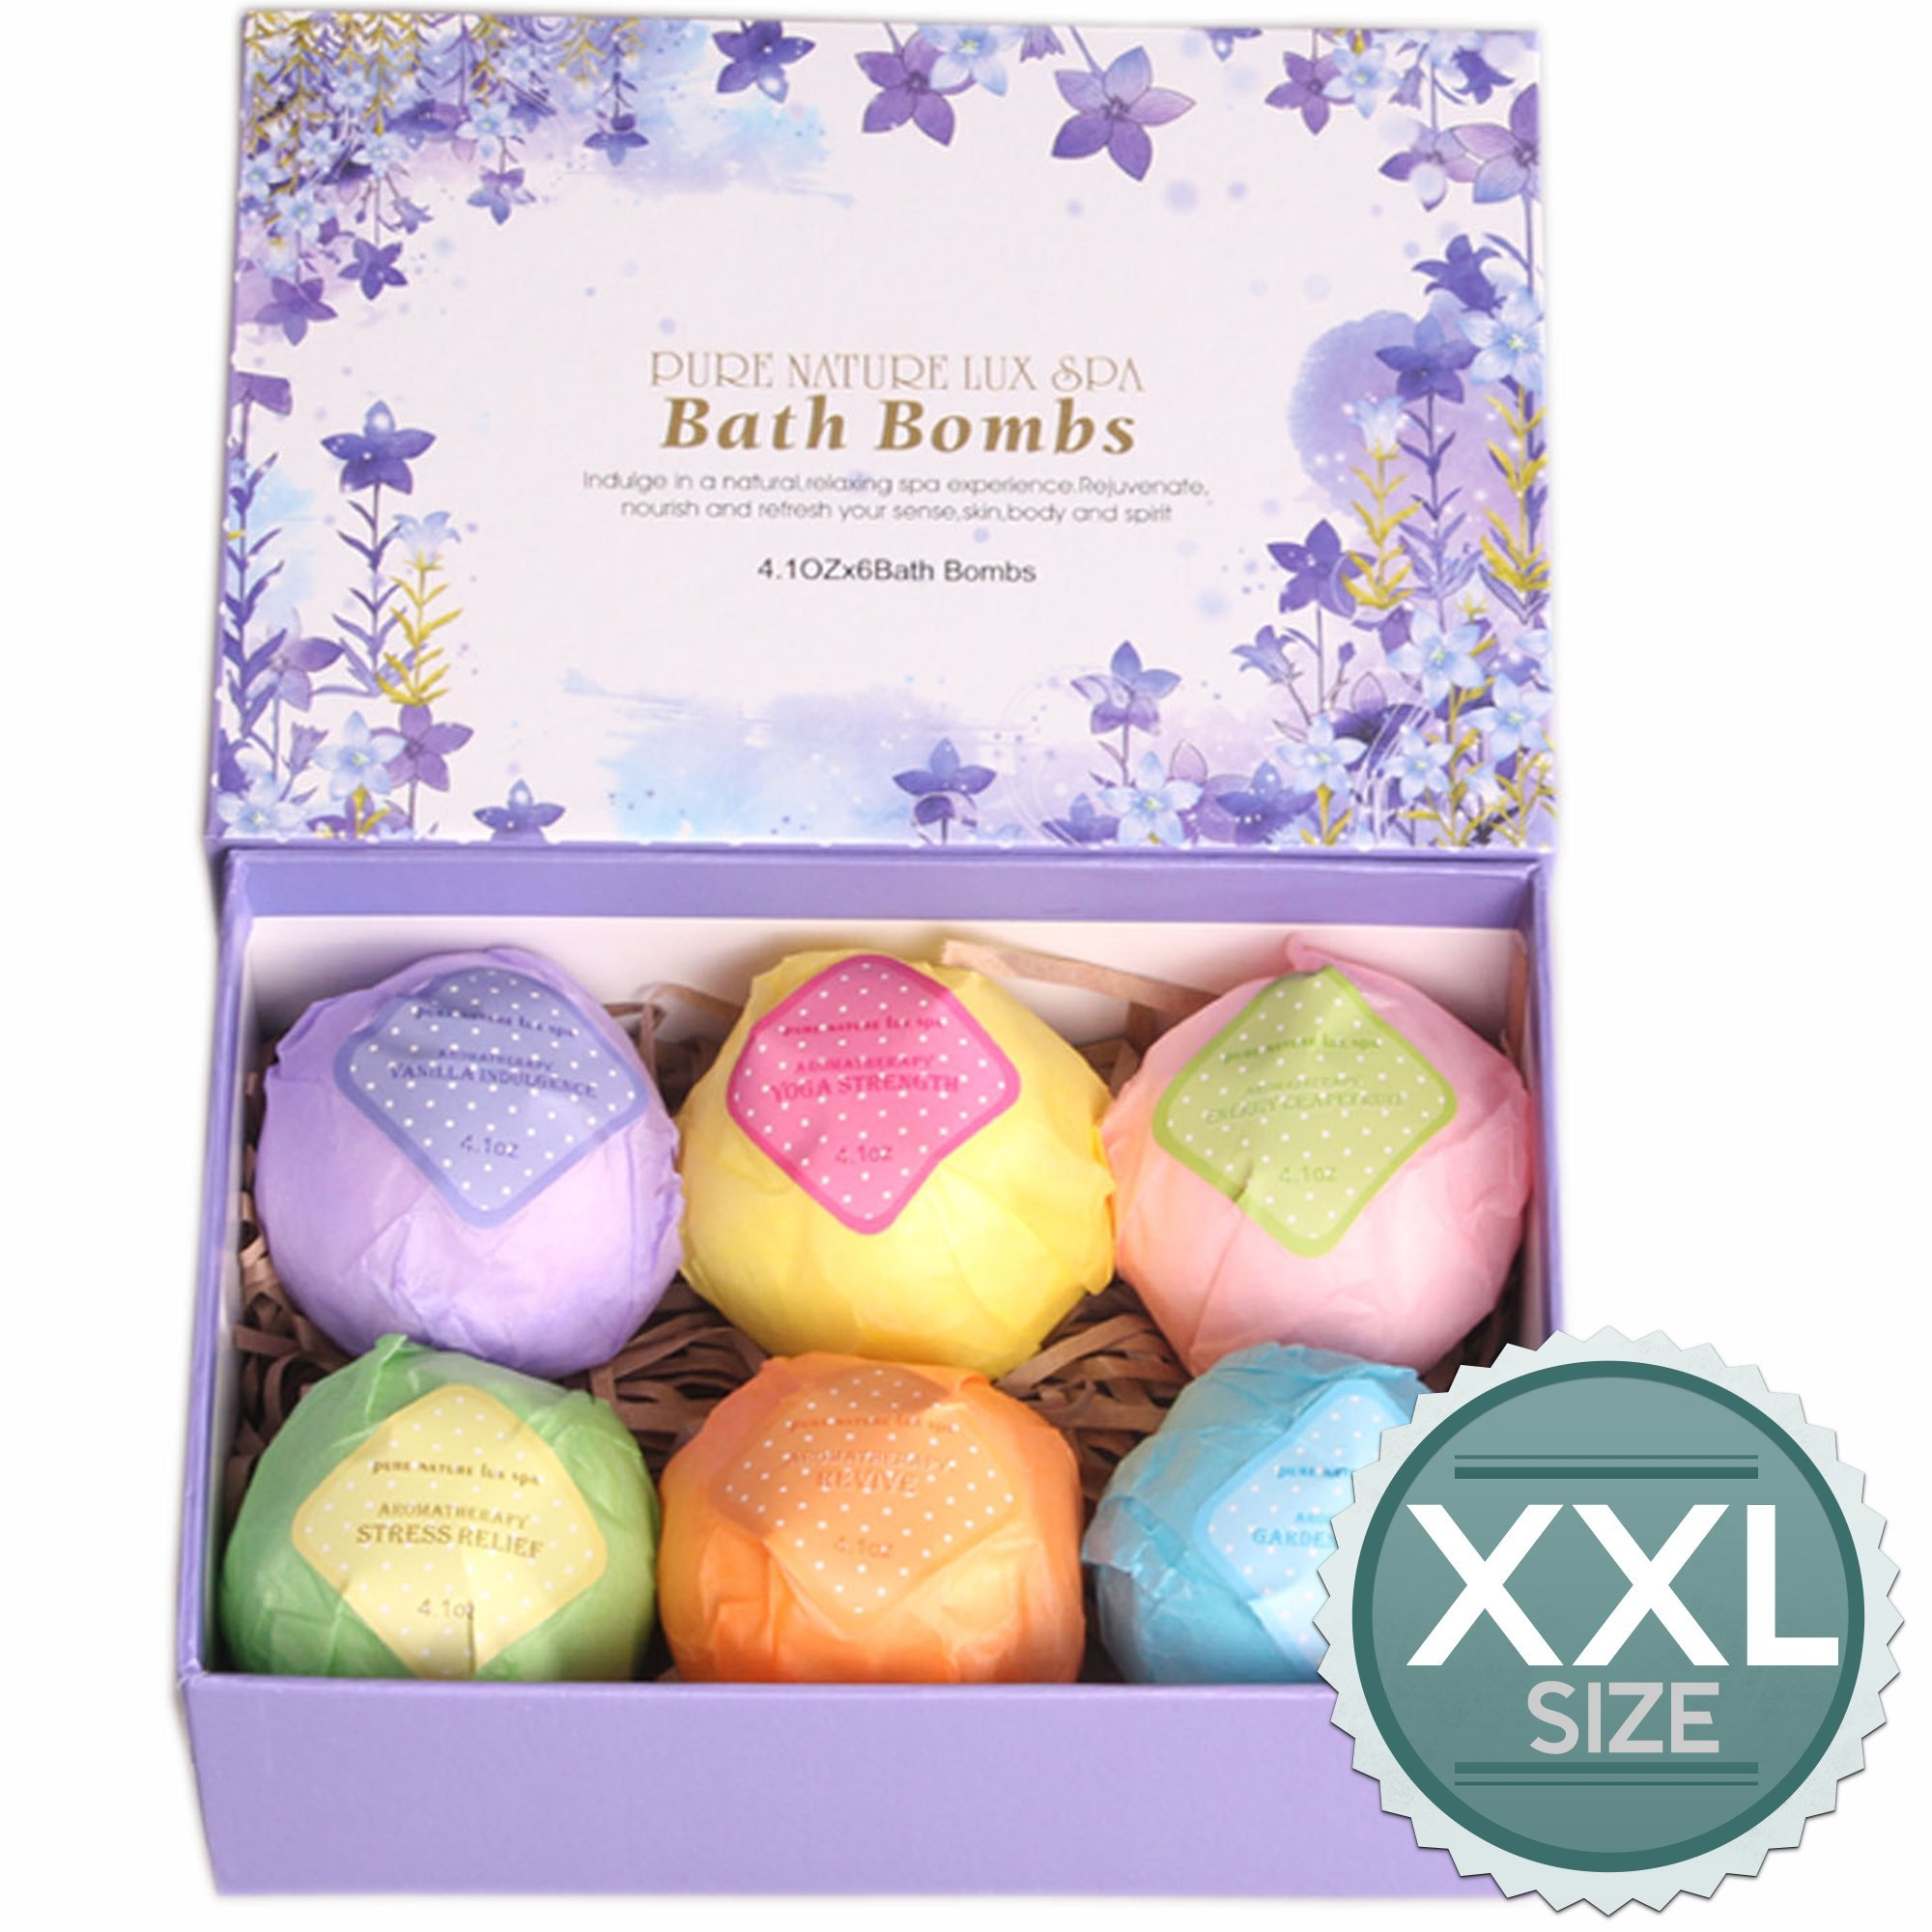 Amazon.com : Bath Bombs Ultra Lush Gift Set By NATURAL SPA - 6 XXL ...